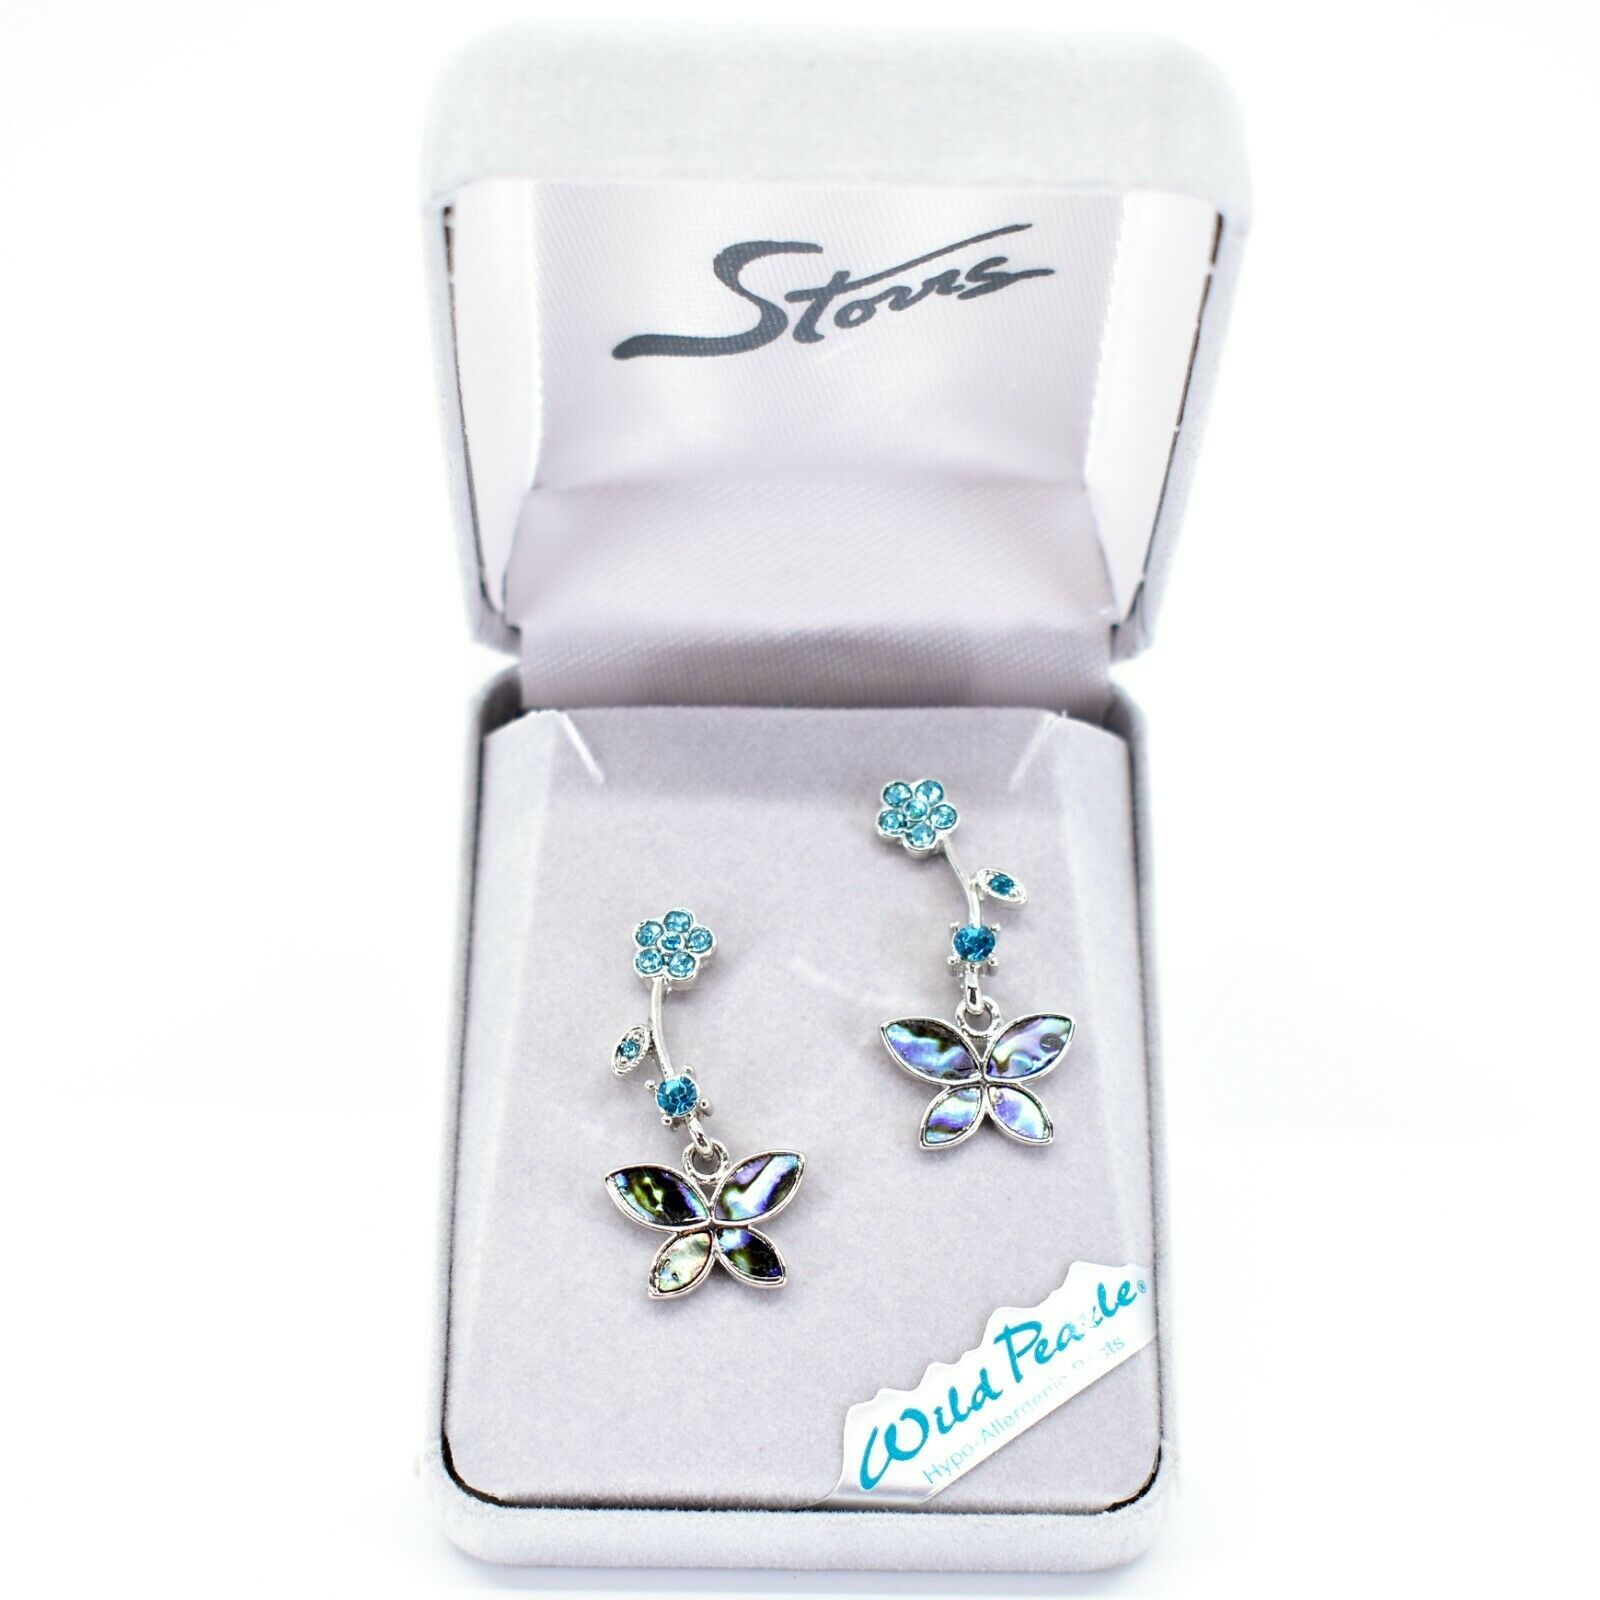 A.T. Storrs Wilde Pearle Abalone Shell Pave Crystal Flowers & Butterfly Earrings